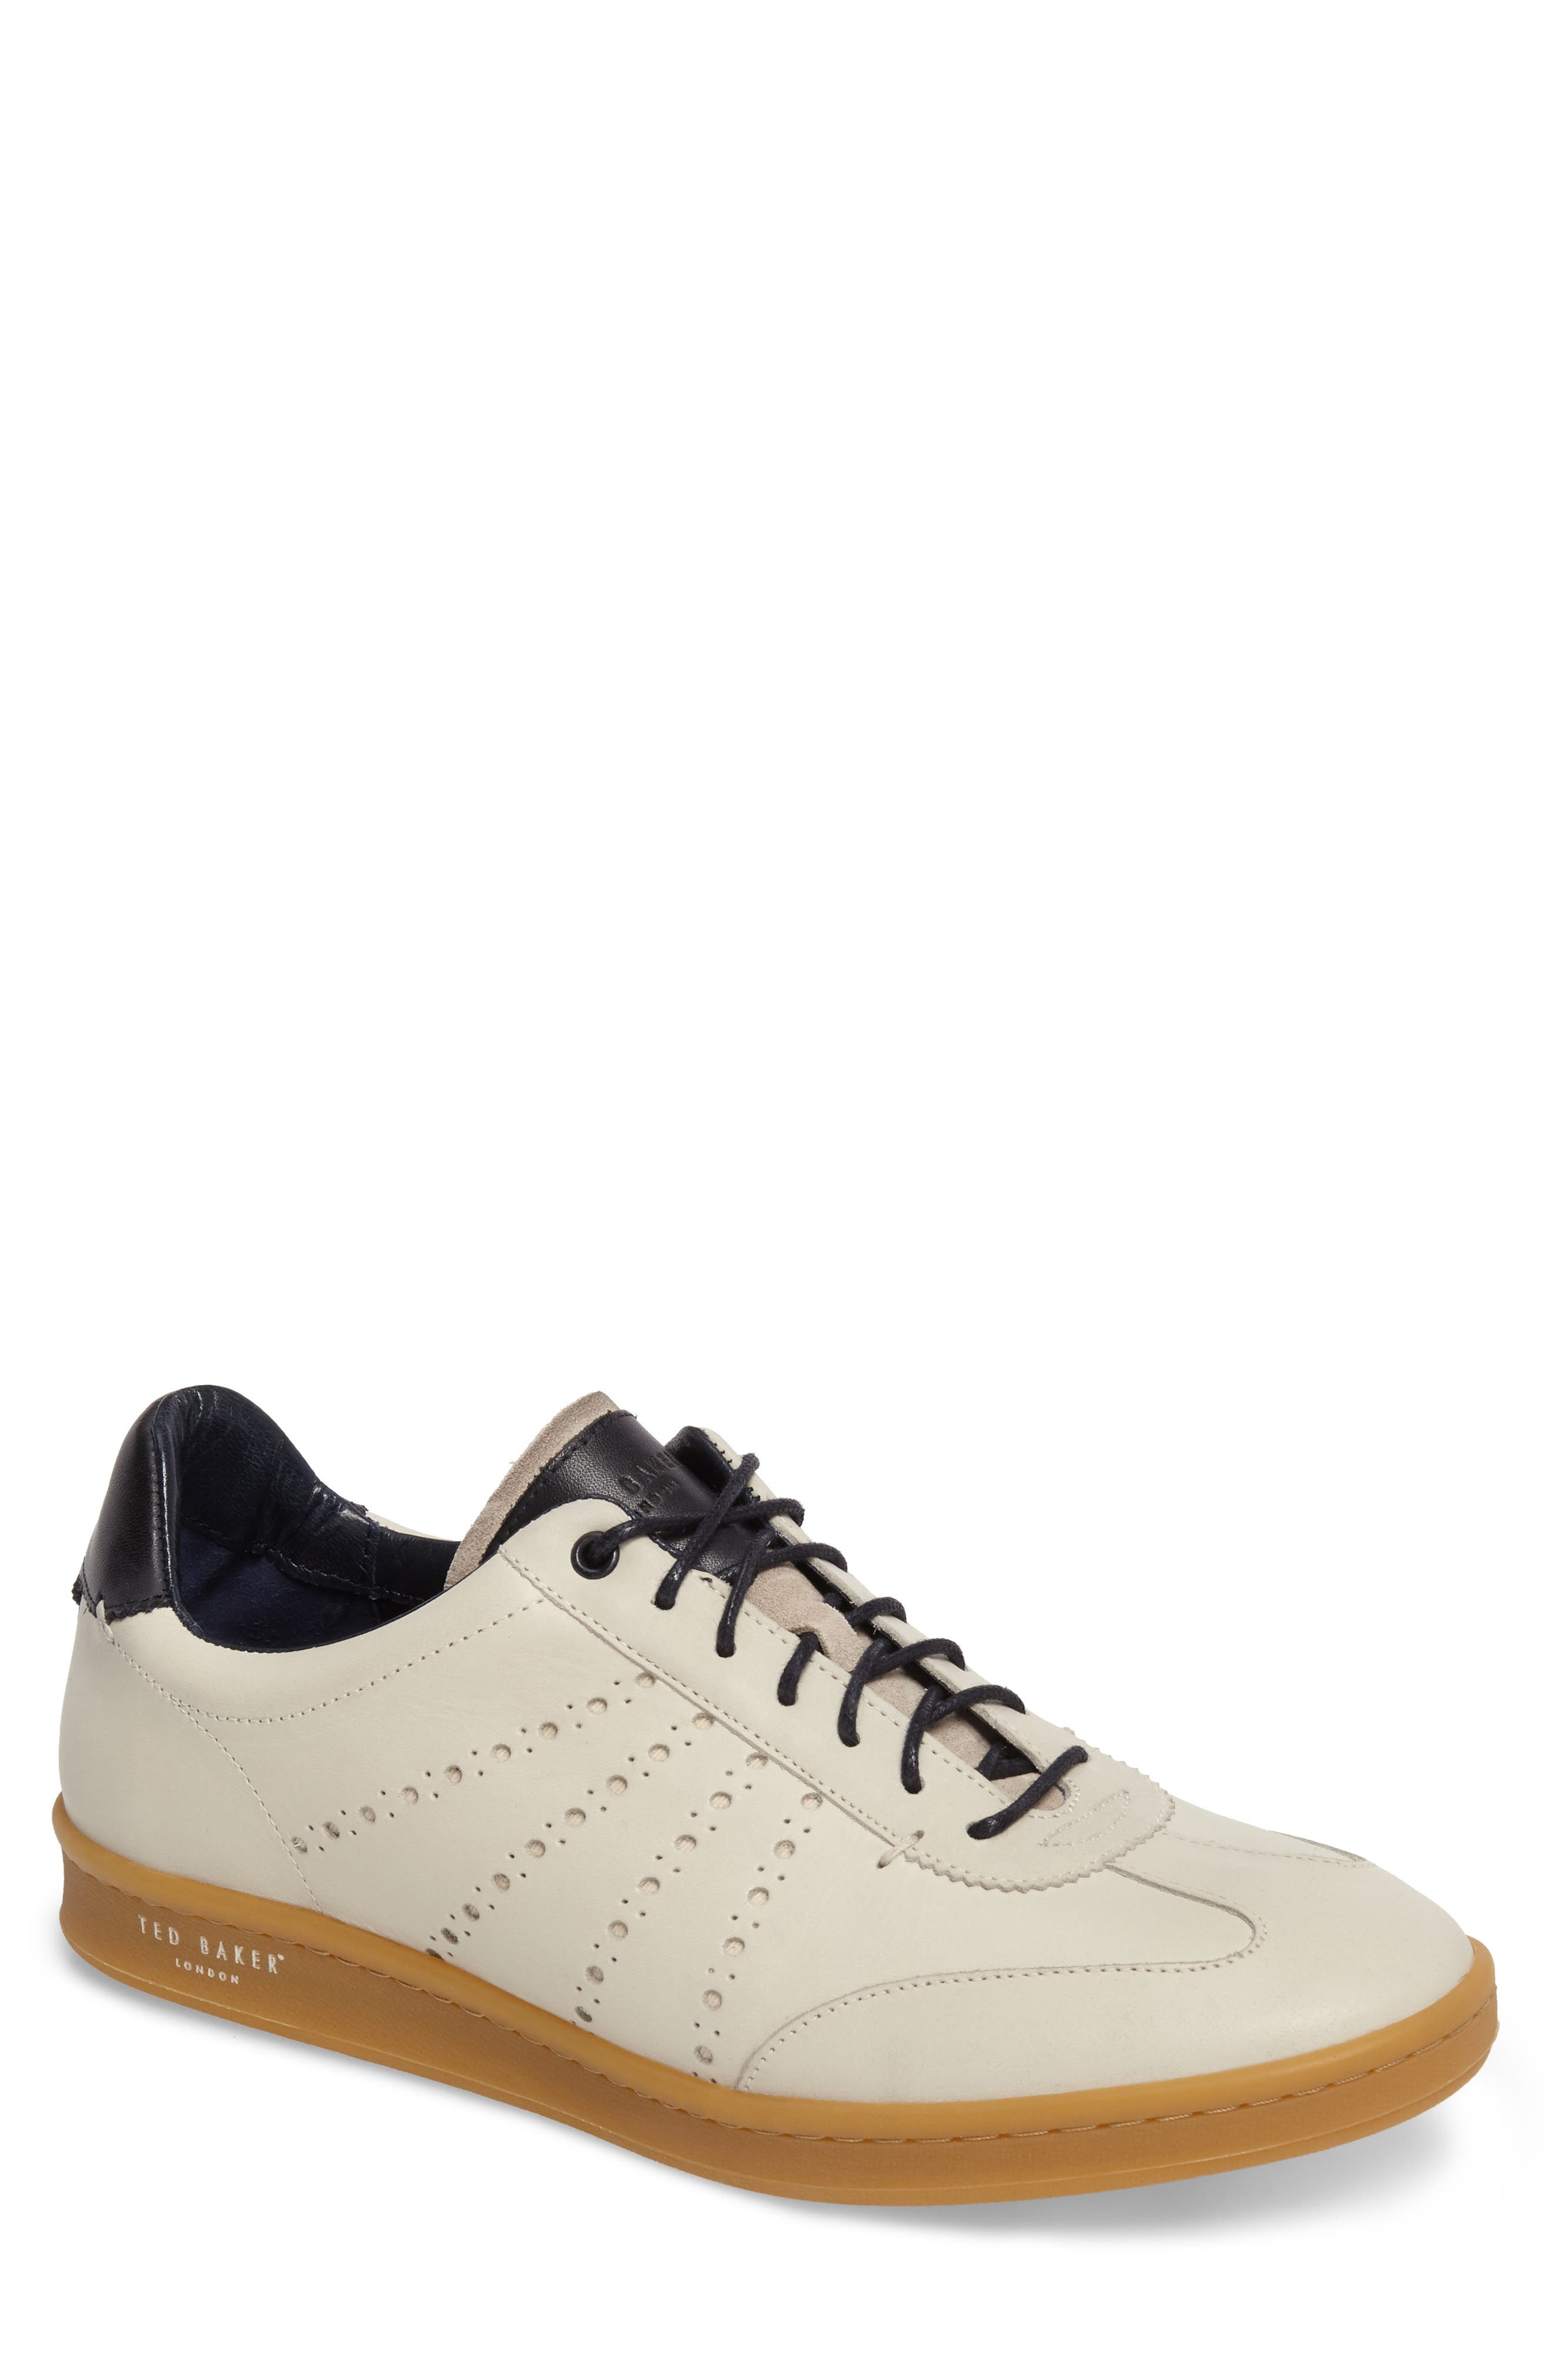 Orlee Sneaker,                             Main thumbnail 2, color,